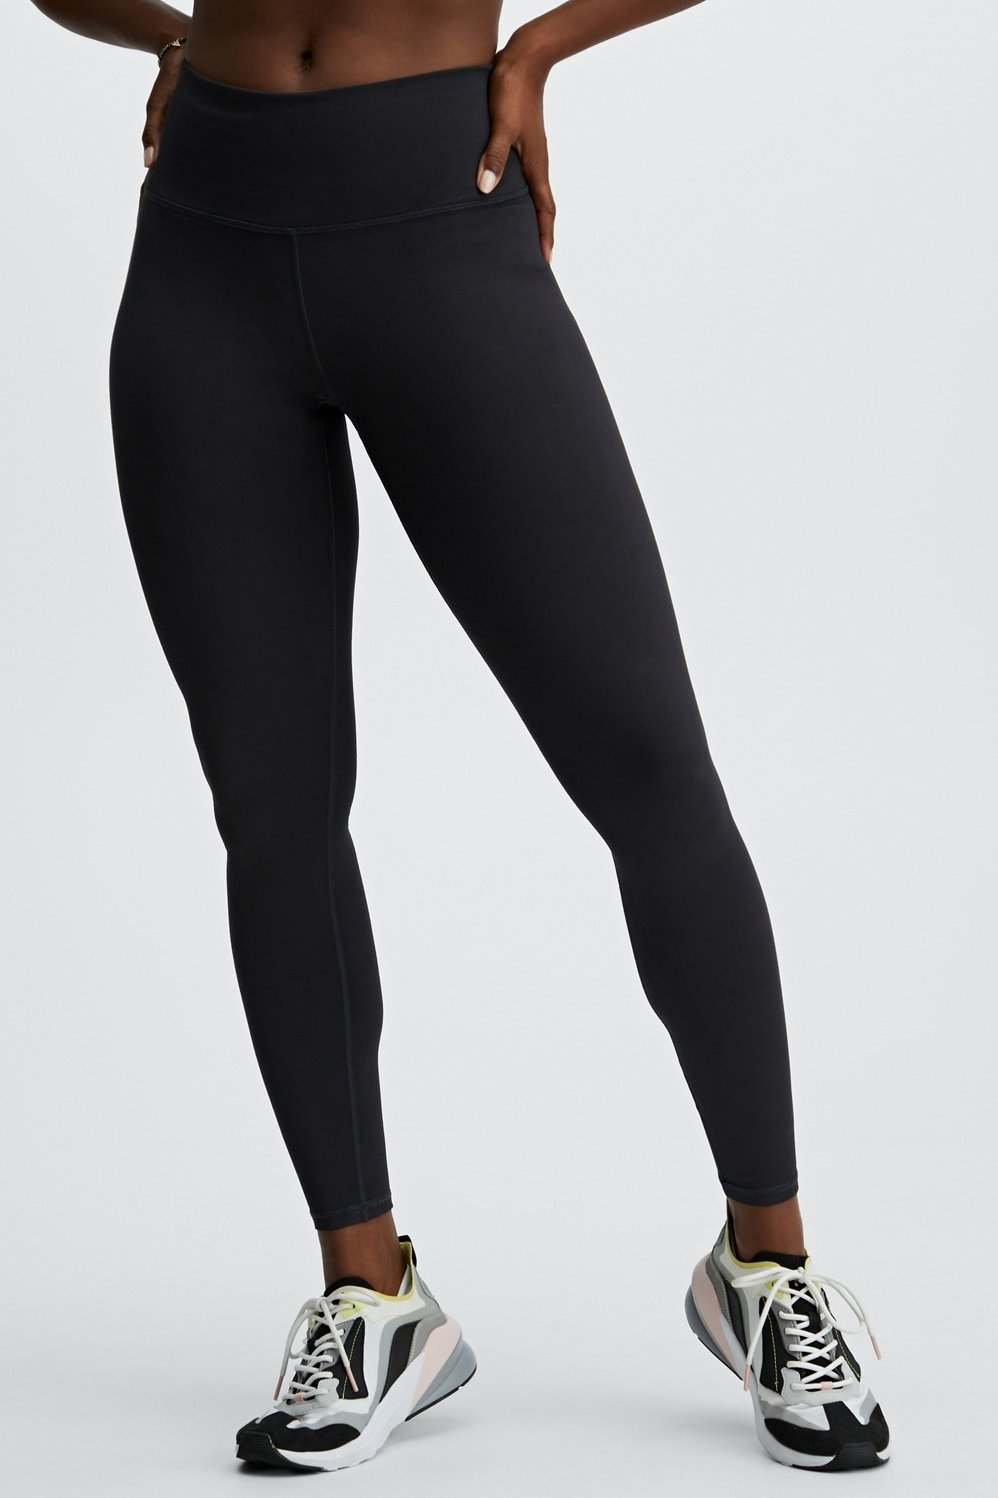 37d9b98cd694a High-Waisted Solid PowerHold® Legging - Fabletics